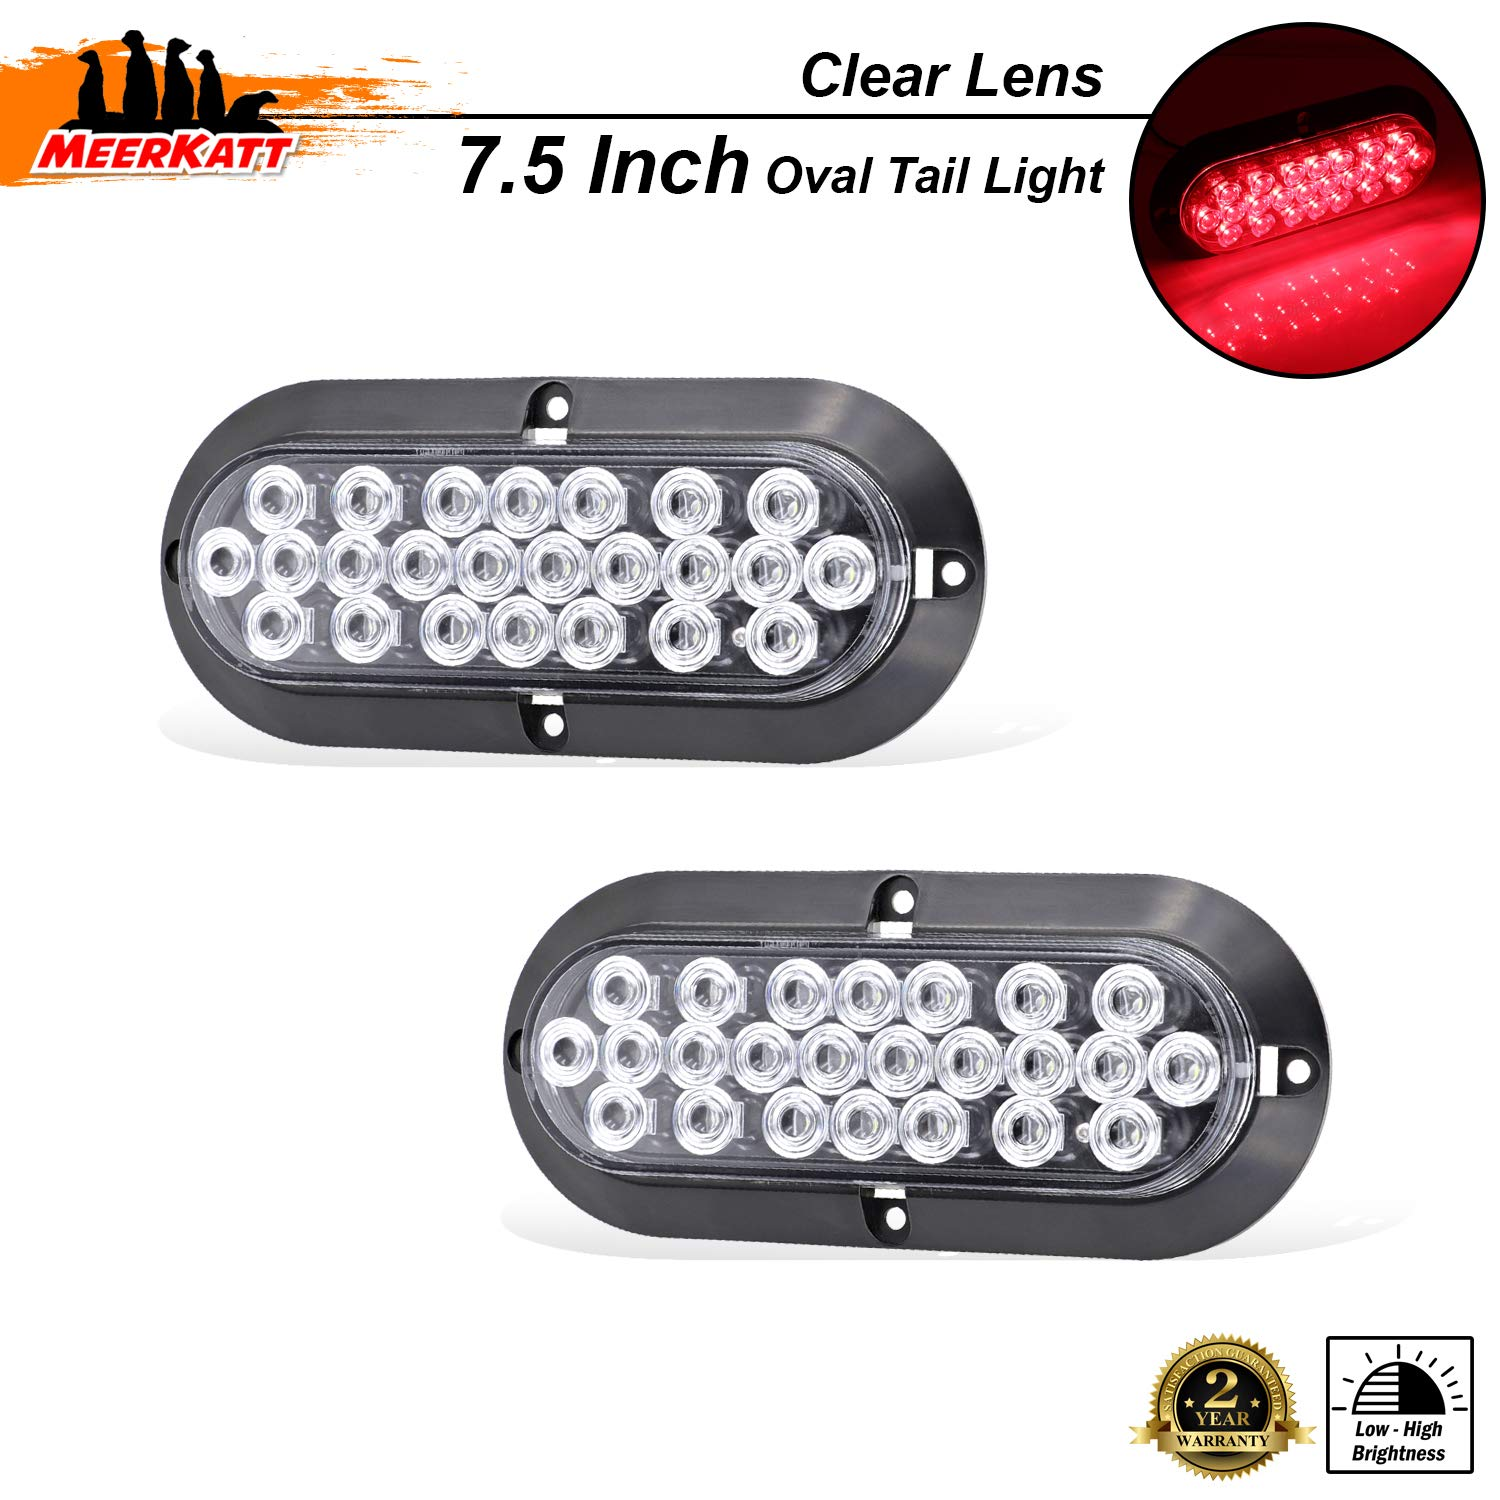 6 Inch Oval Clear Lens Amber LED Indicator Trailer Tail Light Turn Signal Clearance Lamp Good Design Energy Saving Jeep Truck Pickup Lorry Camper Bus RV Tow 12v DC Universal DK12 Pack of 2 Meerkatt